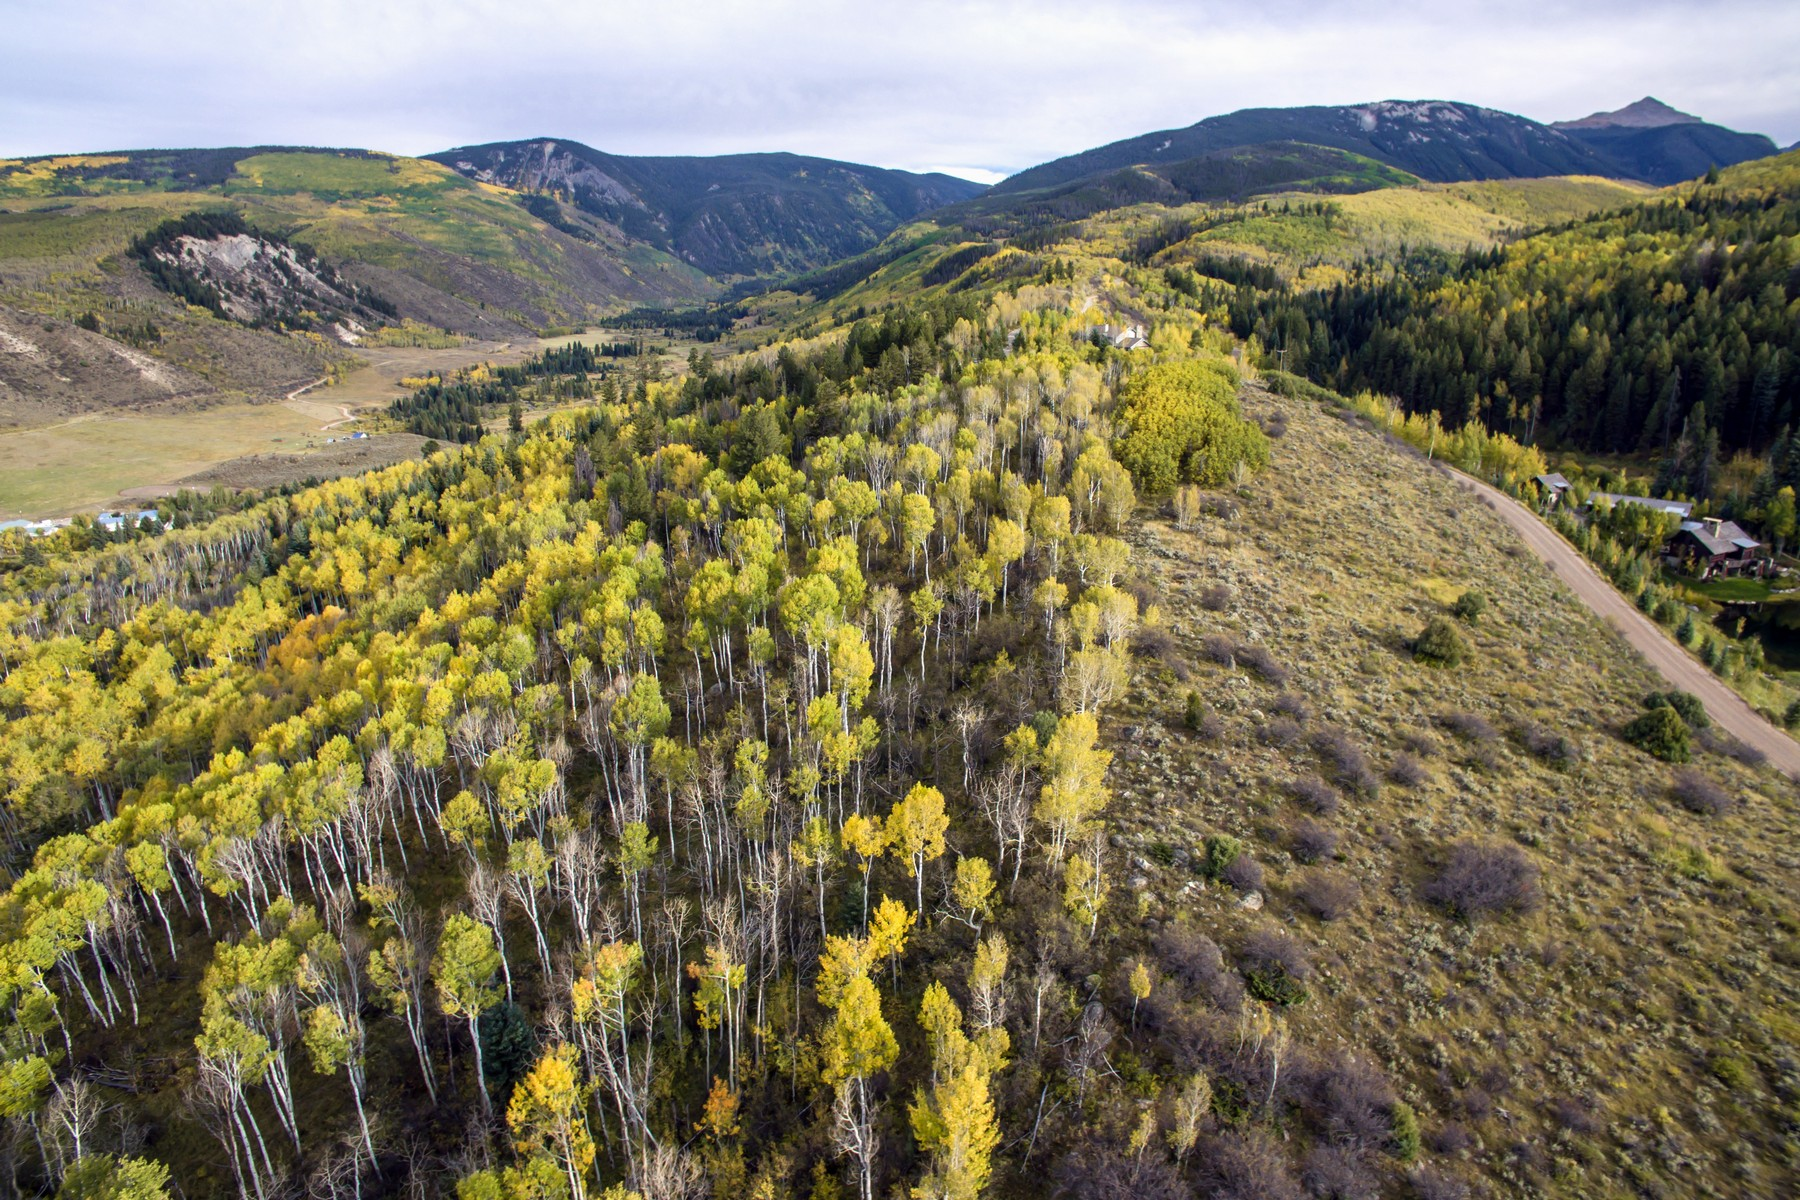 Property for Sale at Paws Up Ranch 2000 W Lake Creek Road Edwards, Colorado 81632 United States